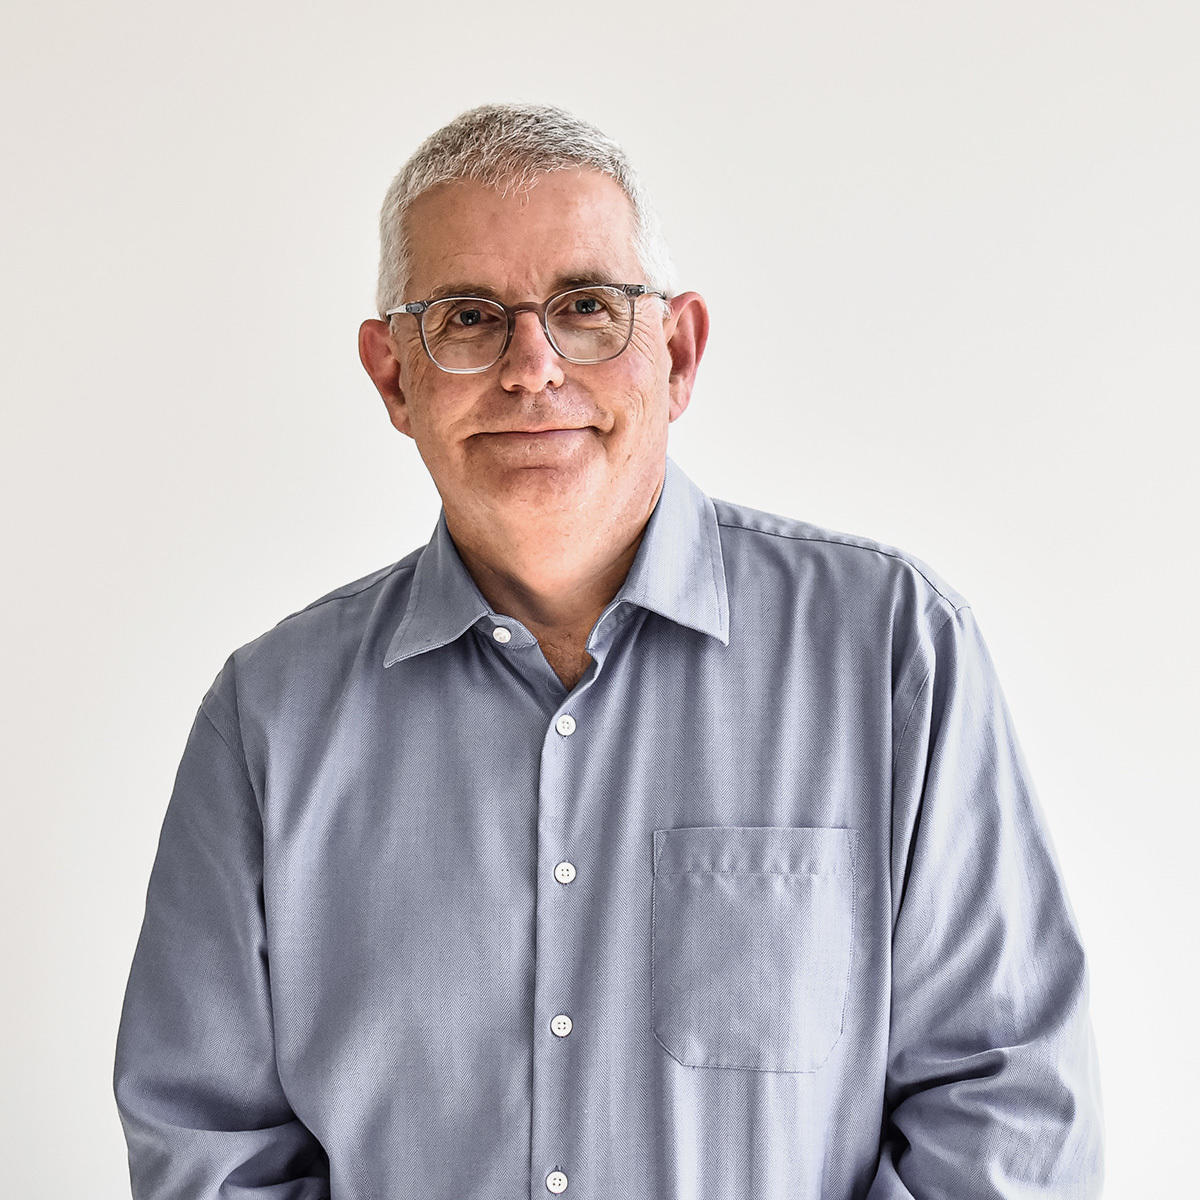 Ray Rosenbaum Joins Tandem Theory To Lead Data Science Division Image